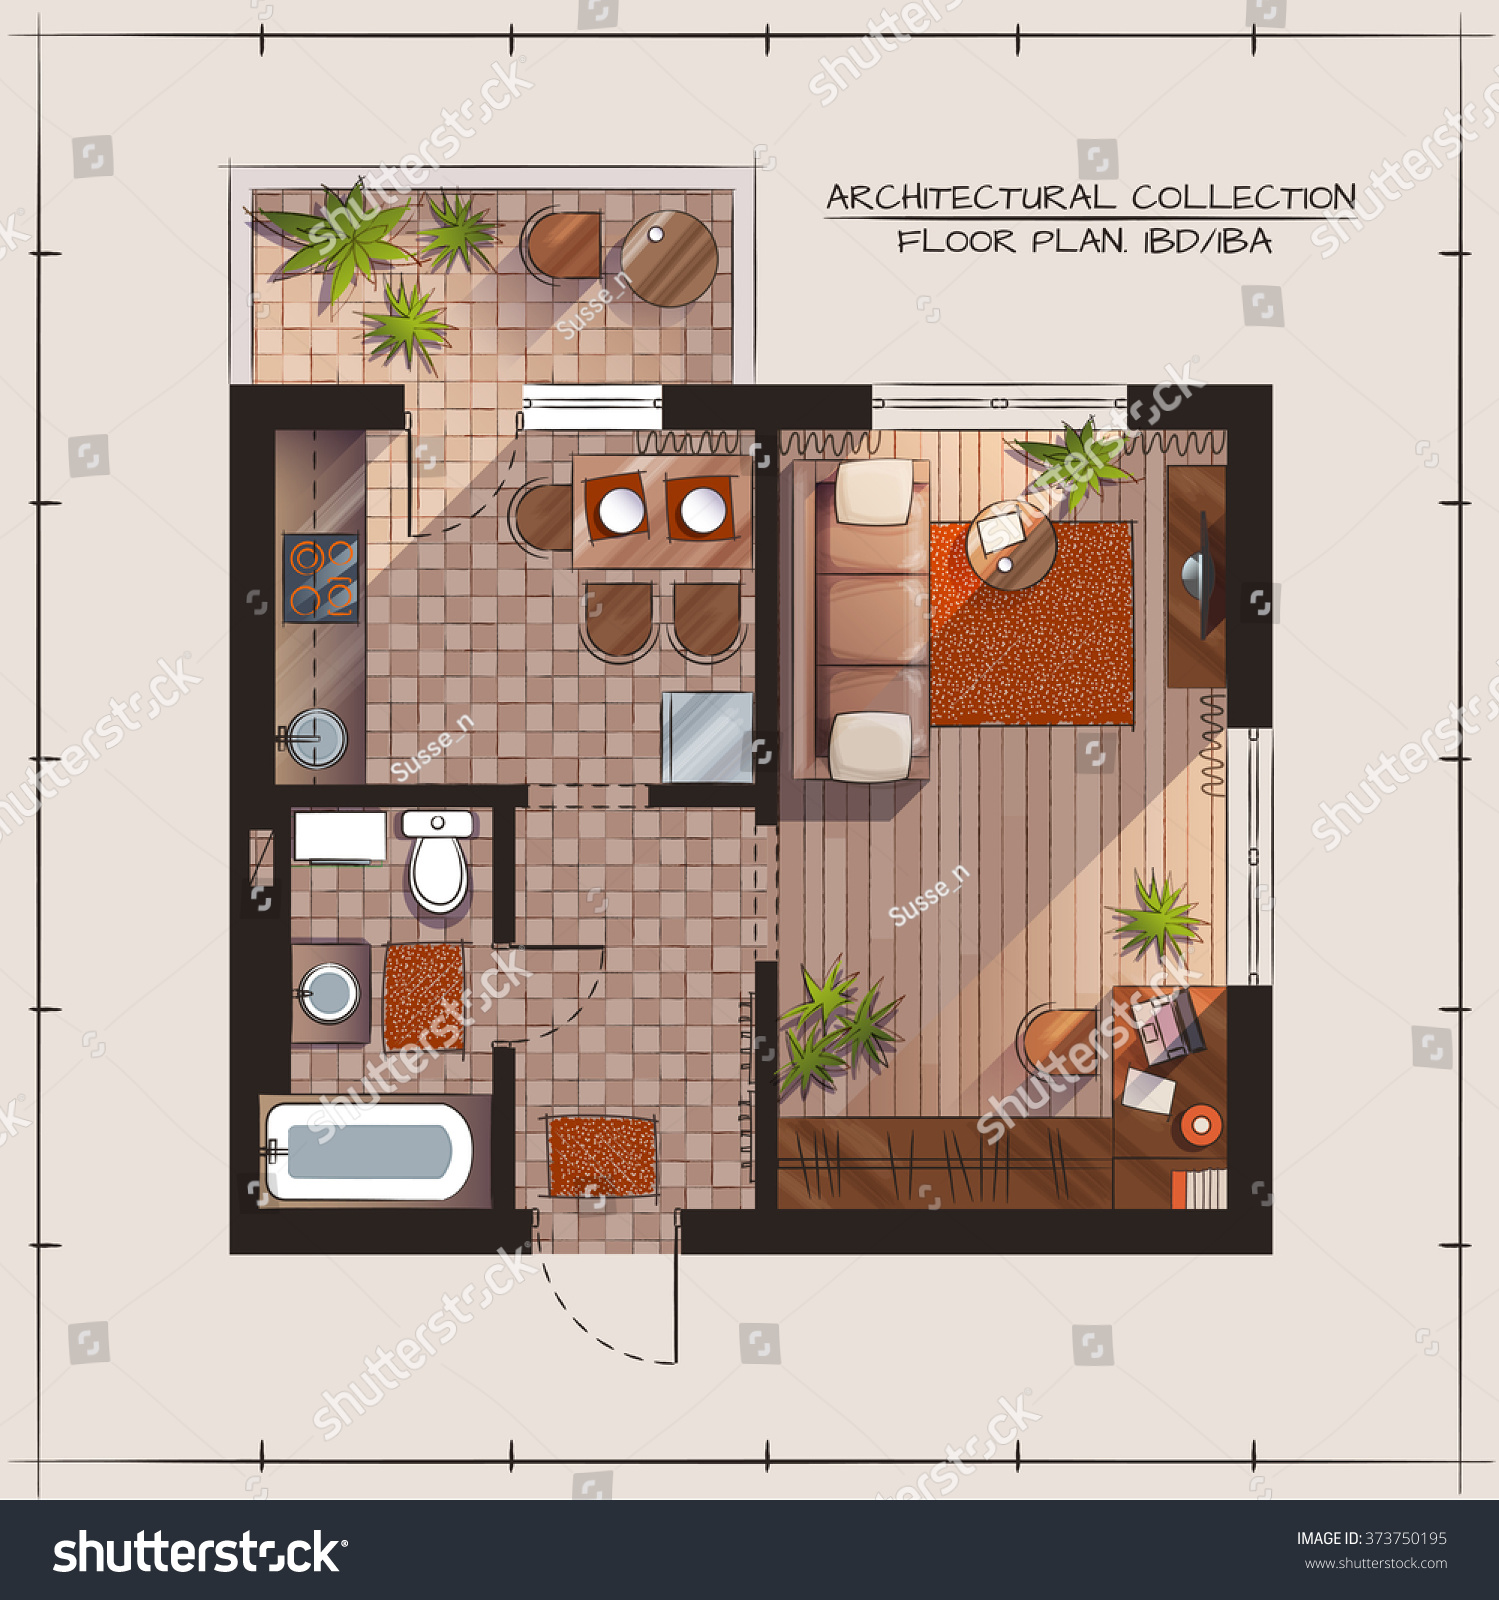 Architectural Color Floor Plan Bedroom Apartment Stock